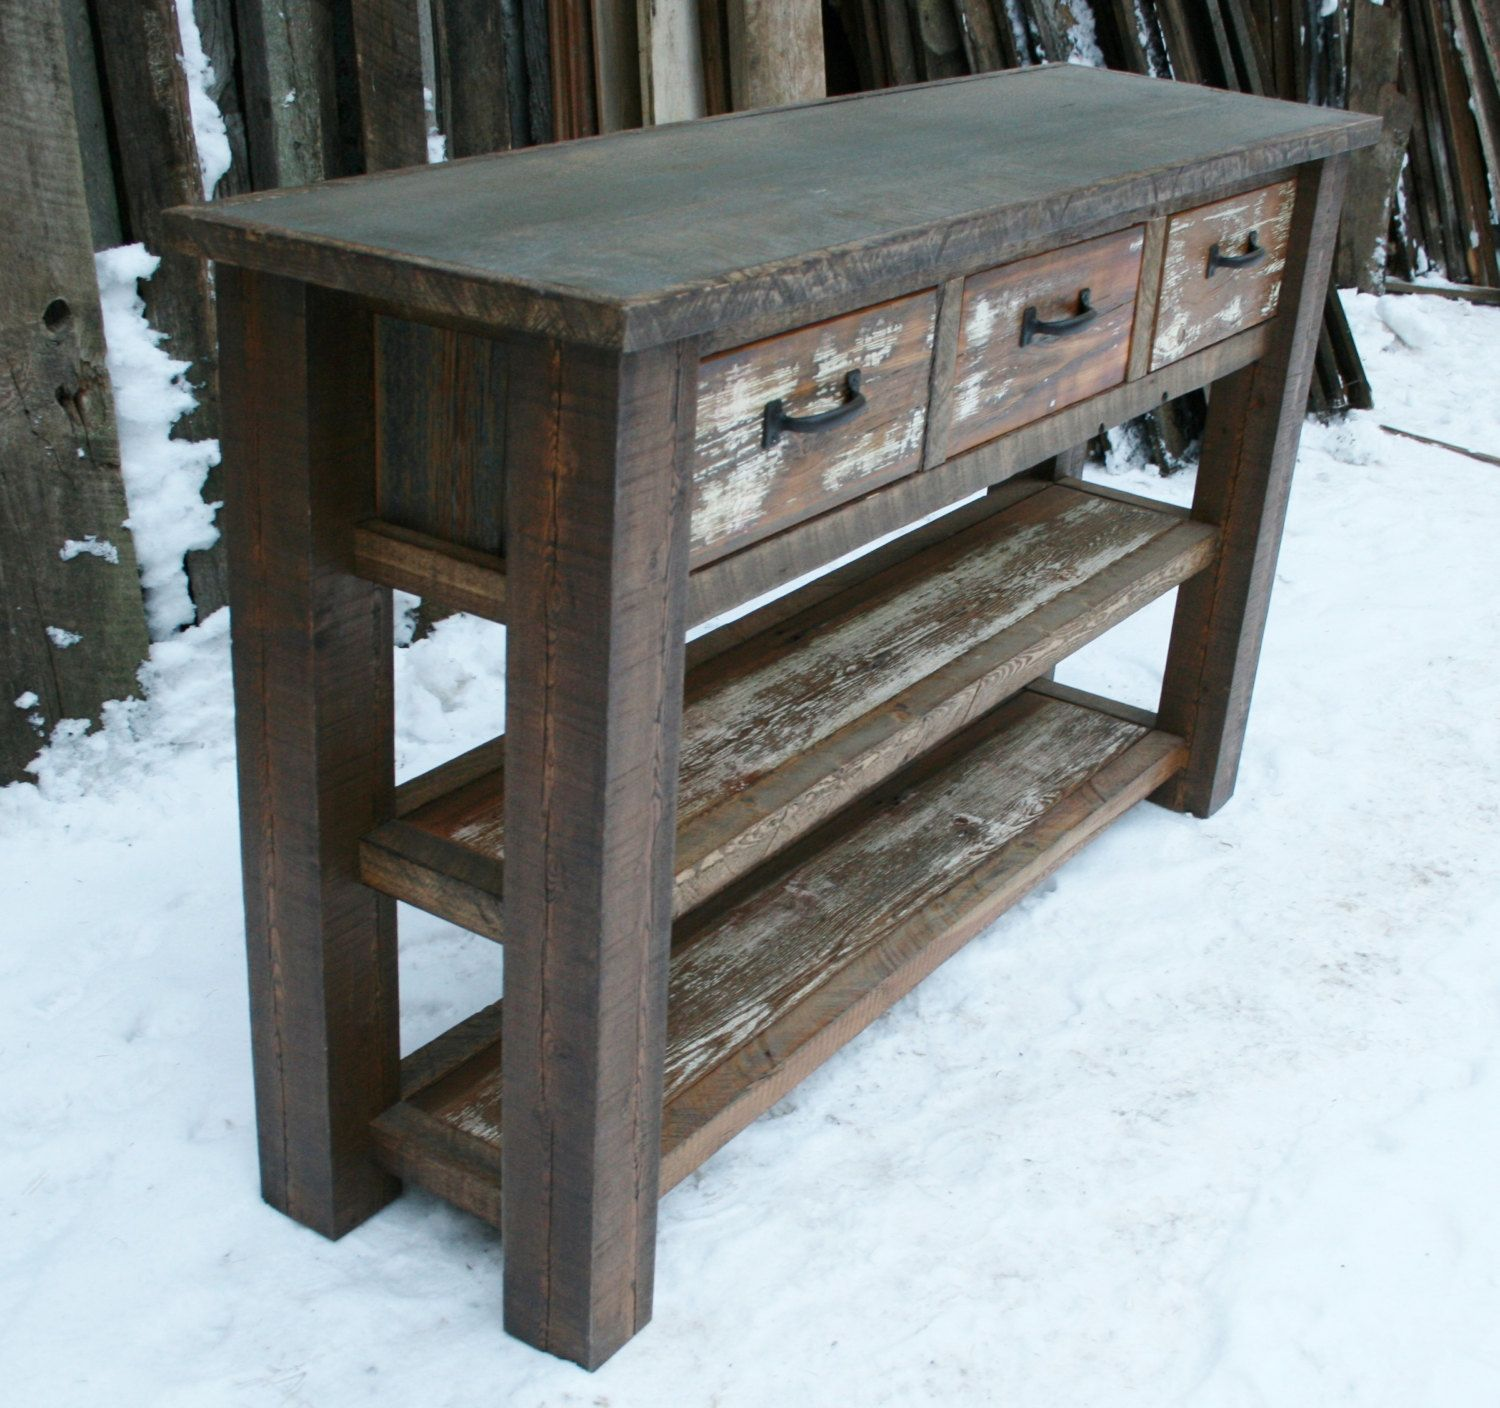 Pallet Entry Table Reclaimed Rustic Console Entry Table By Echopeakdesign Great Diy